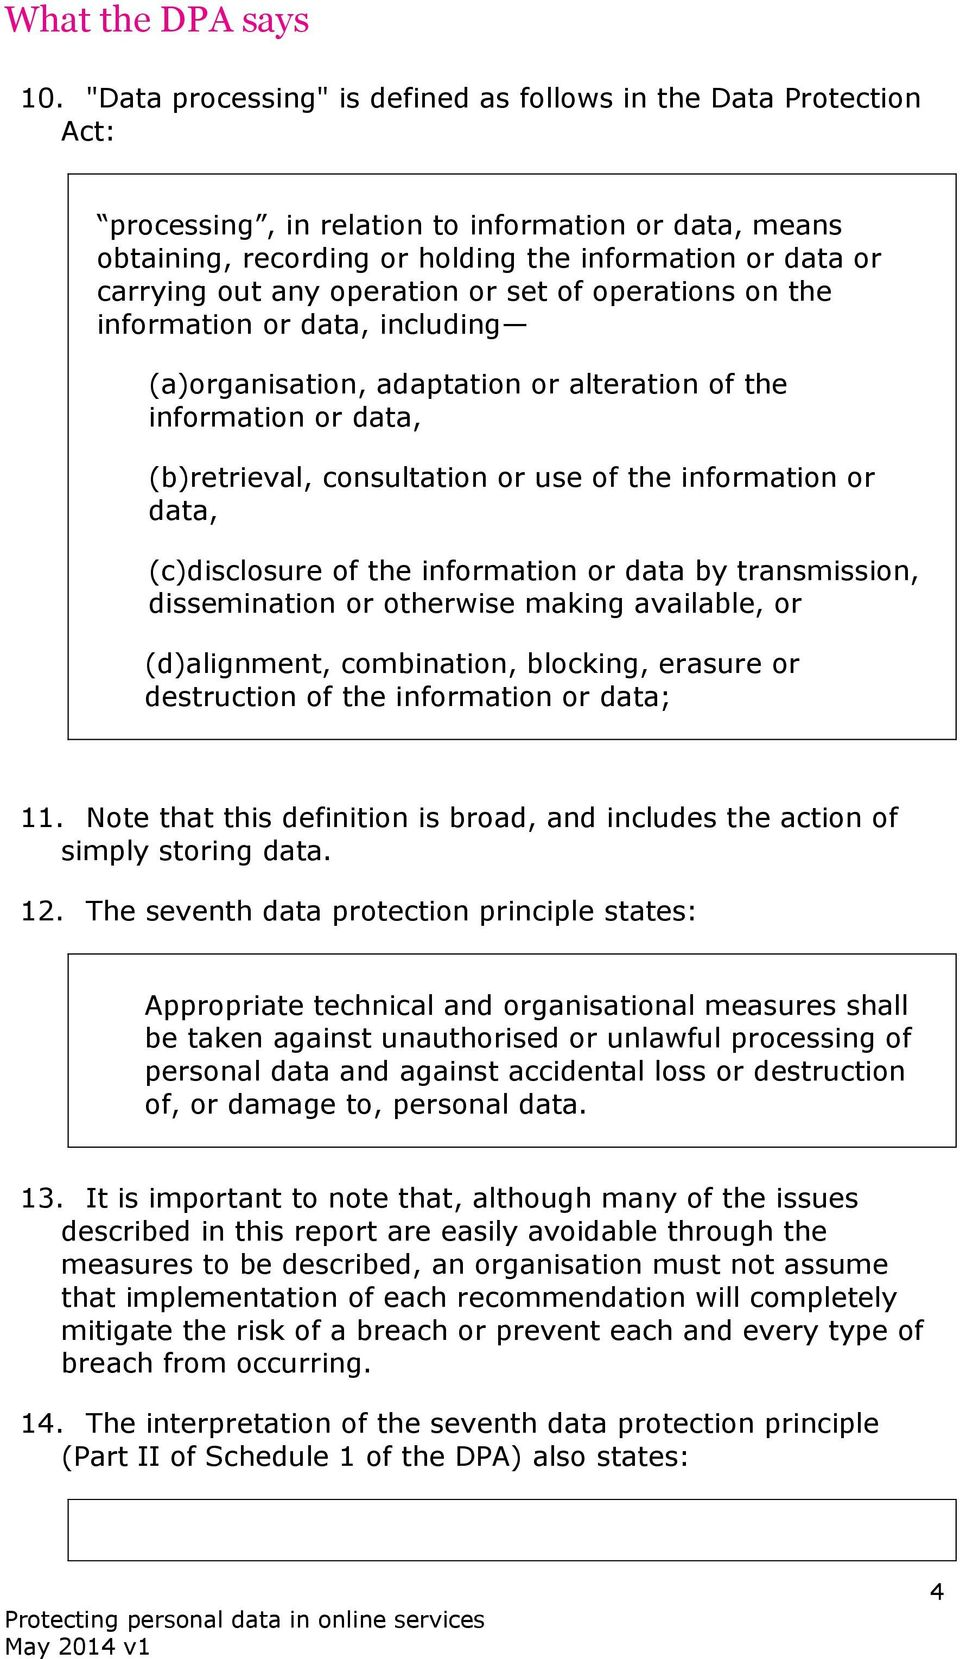 operation or set of operations on the information or data, including (a)organisation, adaptation or alteration of the information or data, (b)retrieval, consultation or use of the information or